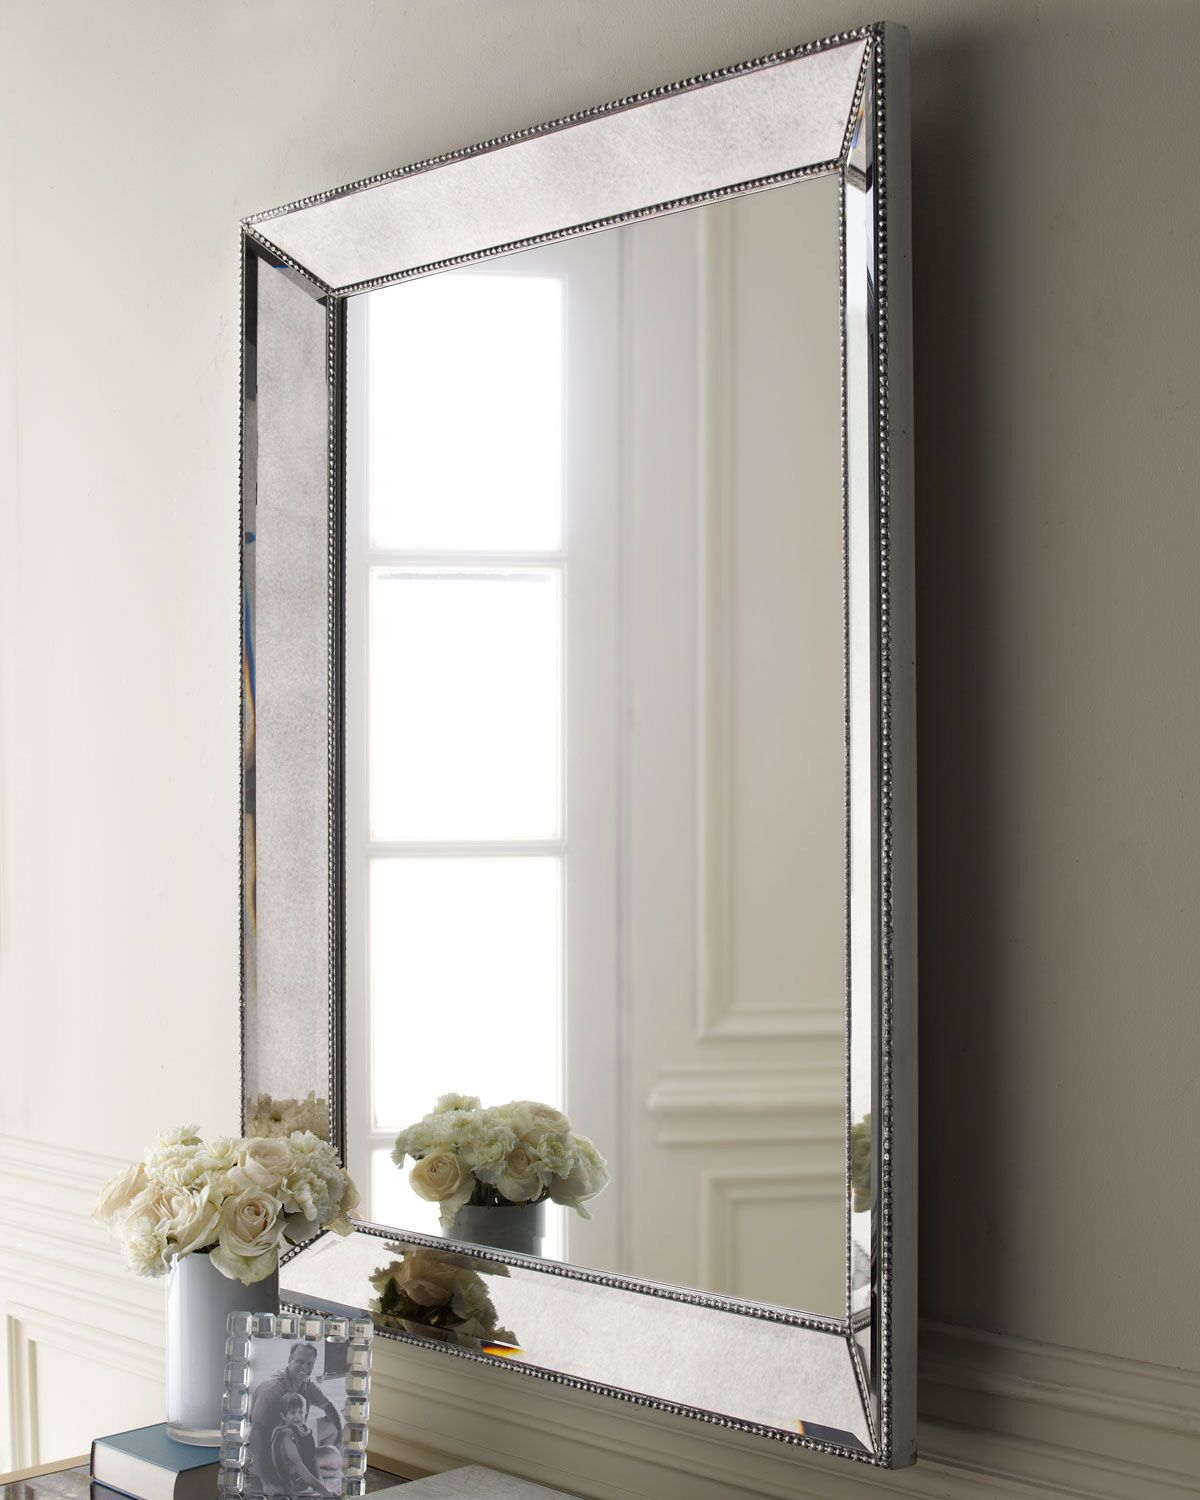 mirrors online mirrors mirror furniture homewares online